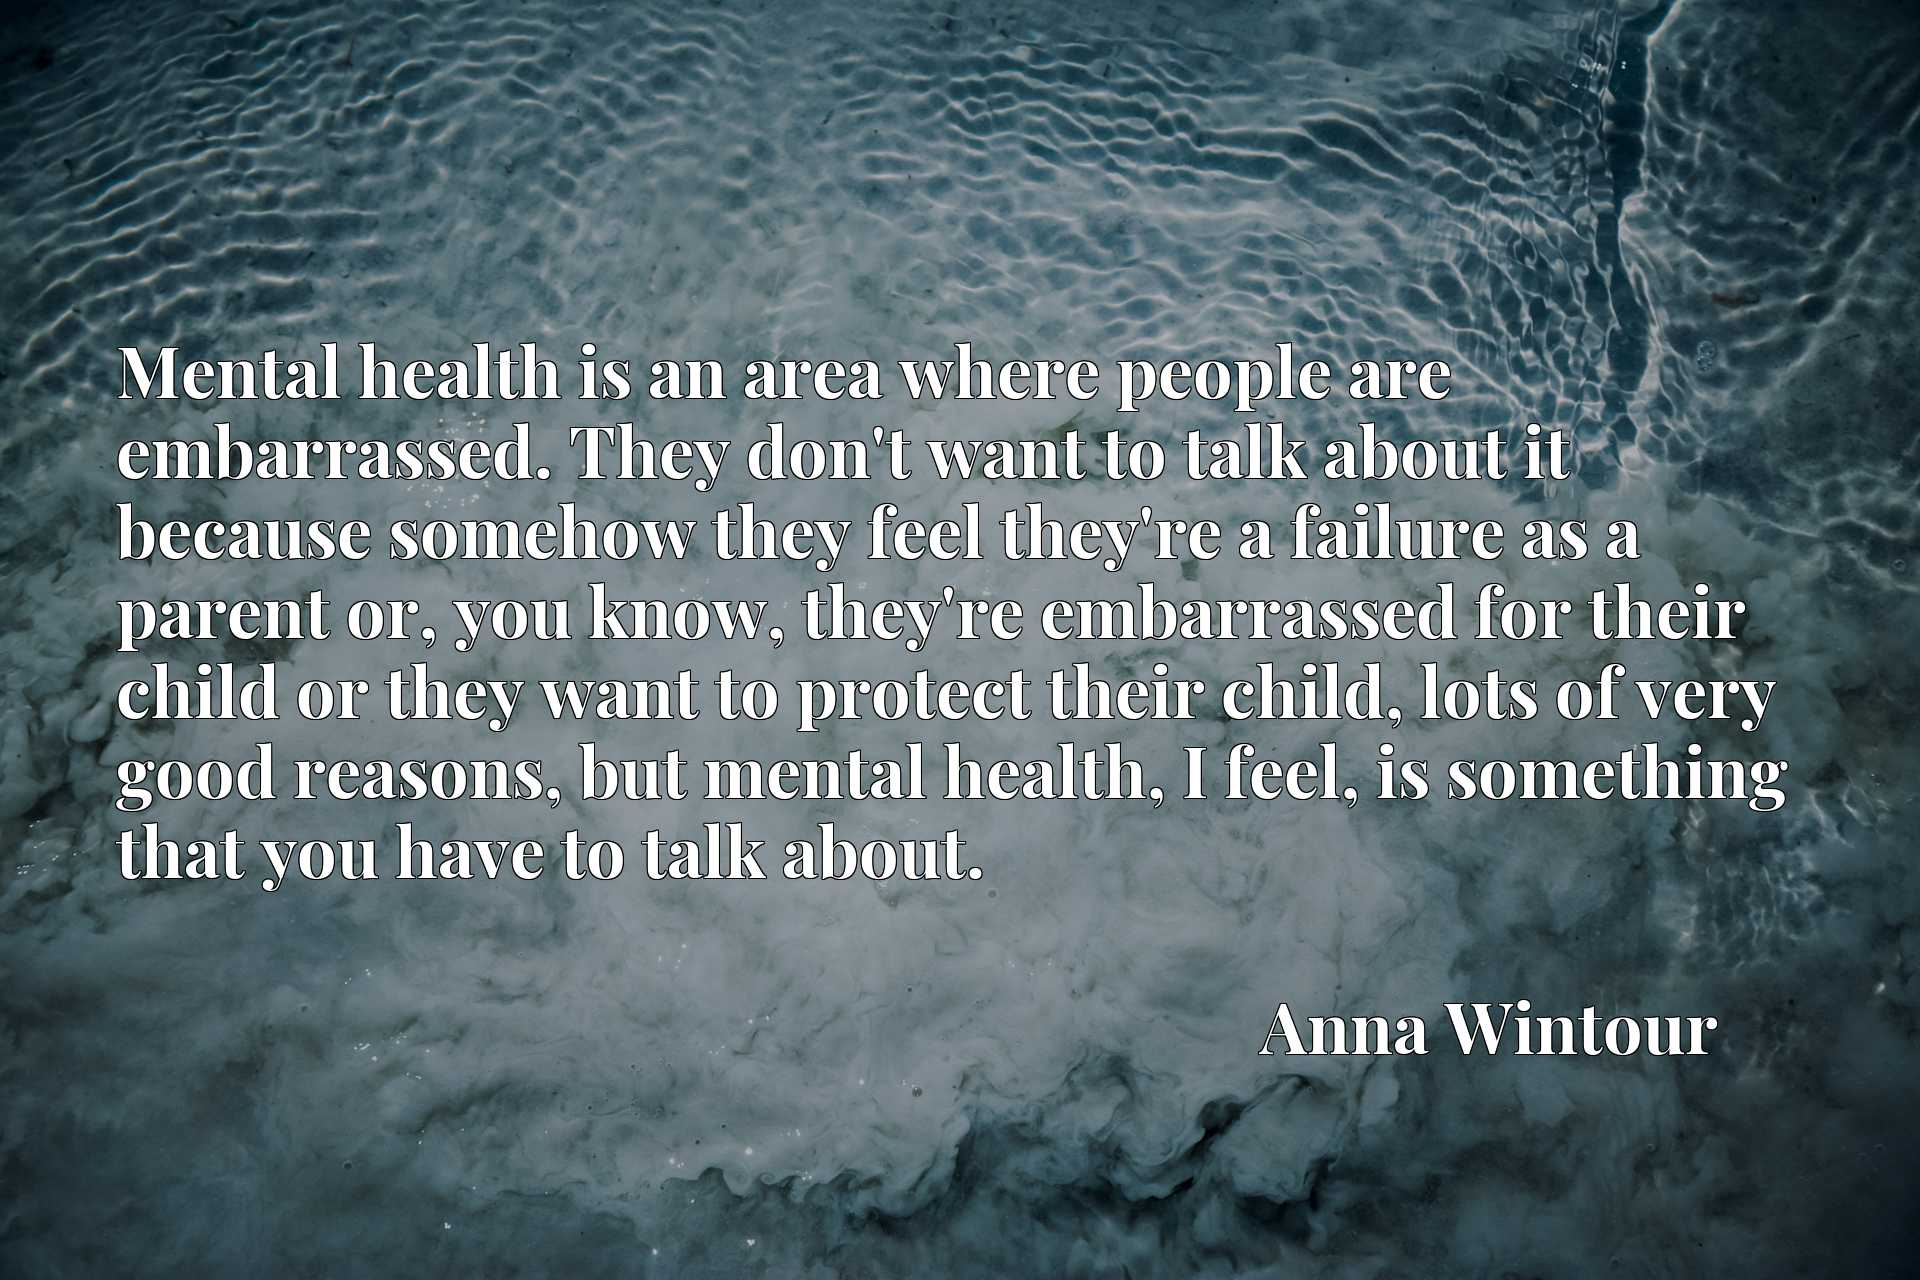 Mental health is an area where people are embarrassed. They don't want to talk about it because somehow they feel they're a failure as a parent or, you know, they're embarrassed for their child or they want to protect their child, lots of very good reasons, but mental health, I feel, is something that you have to talk about.